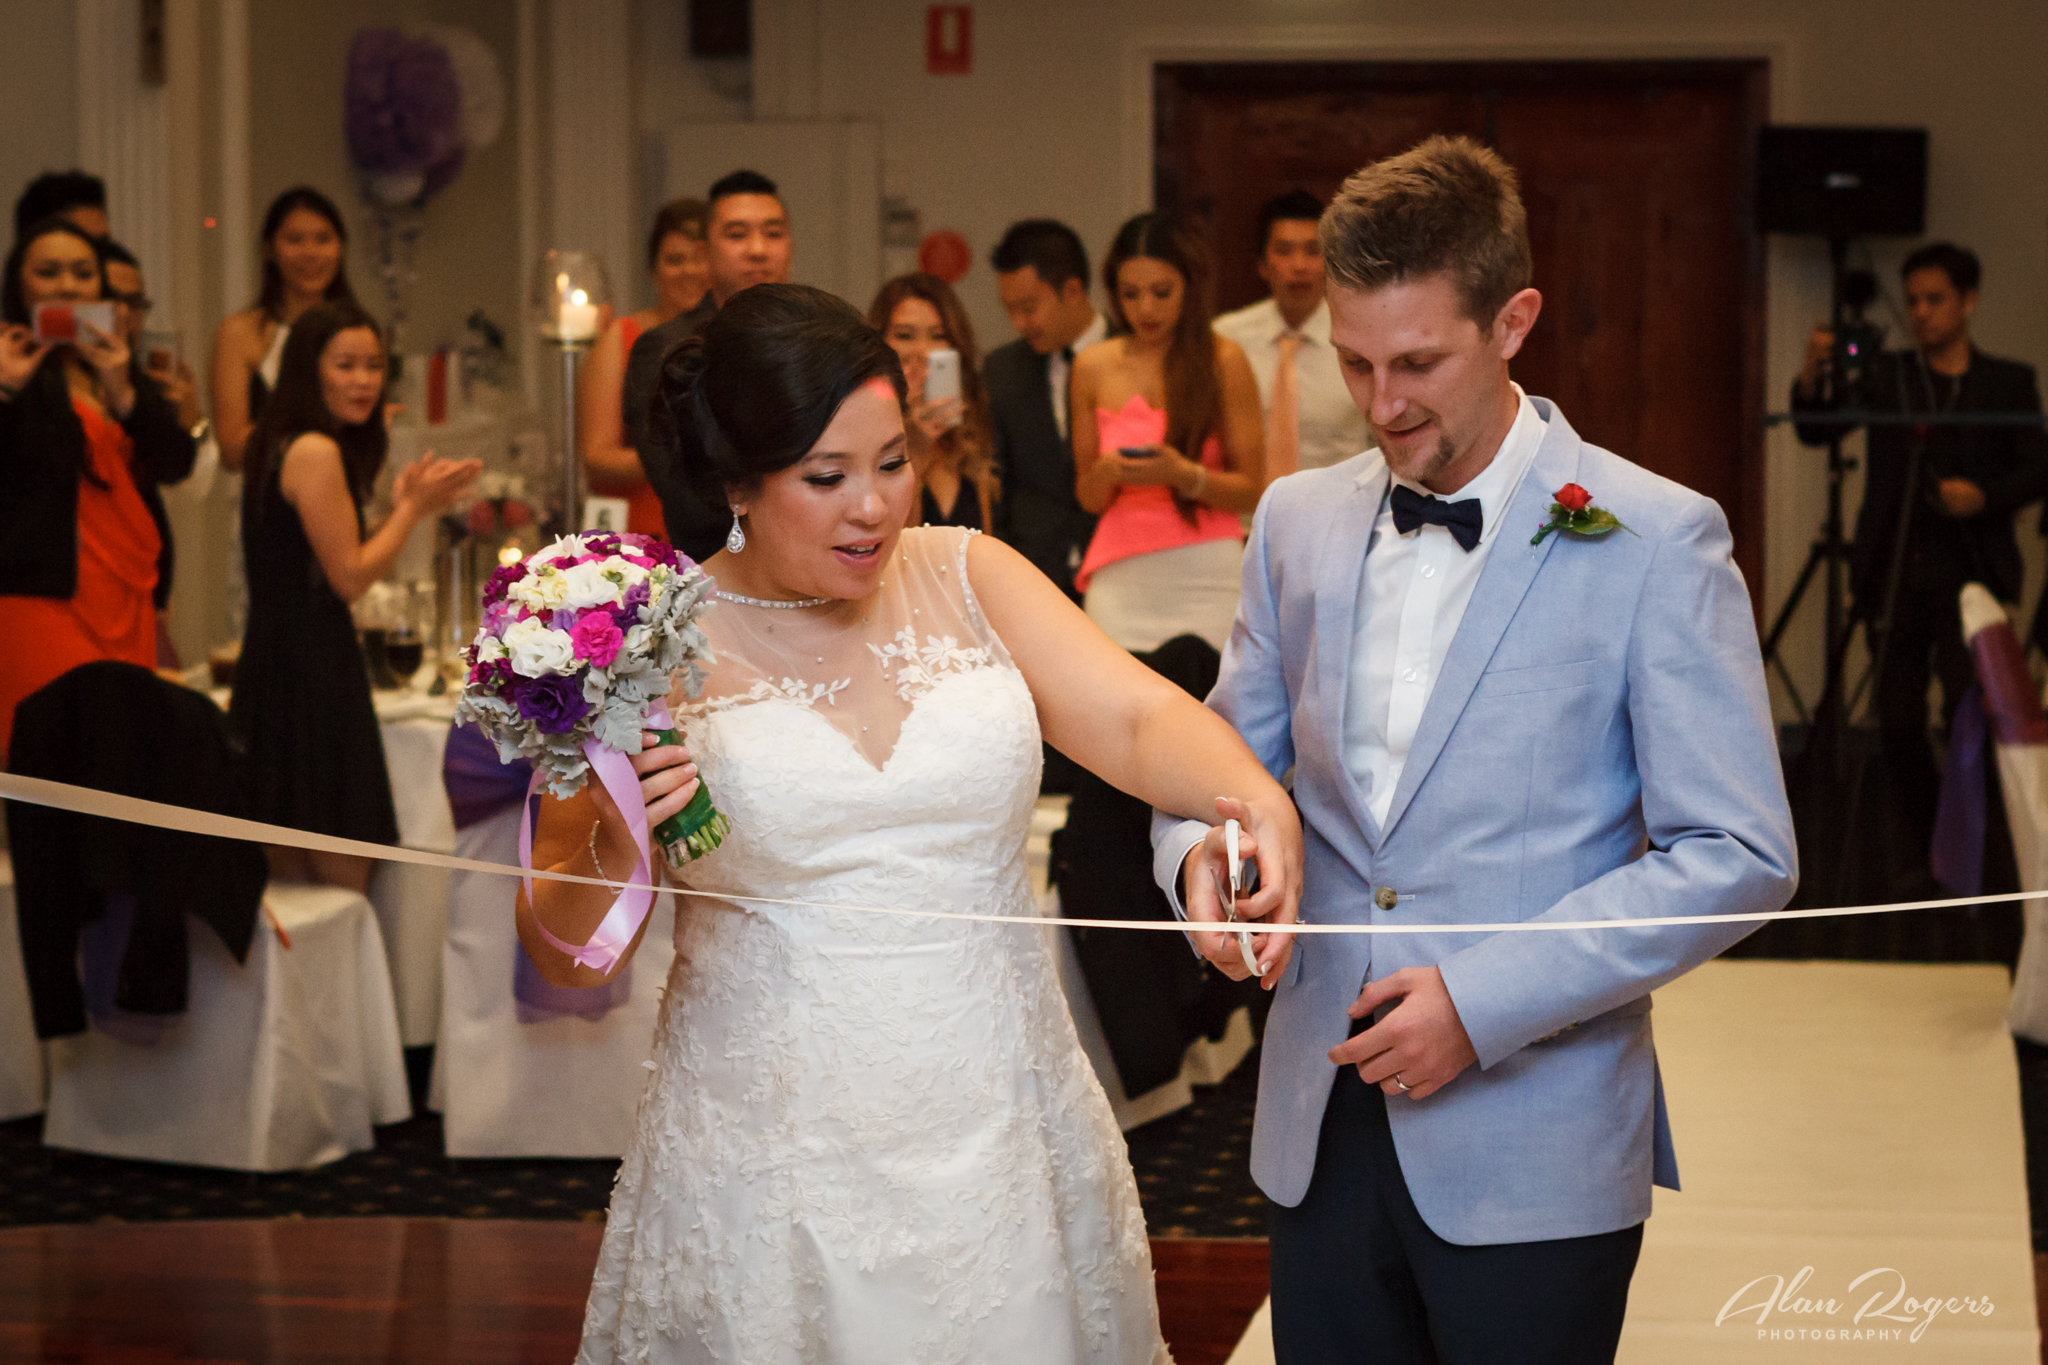 bride-groom-ribbon-cutting.jpg